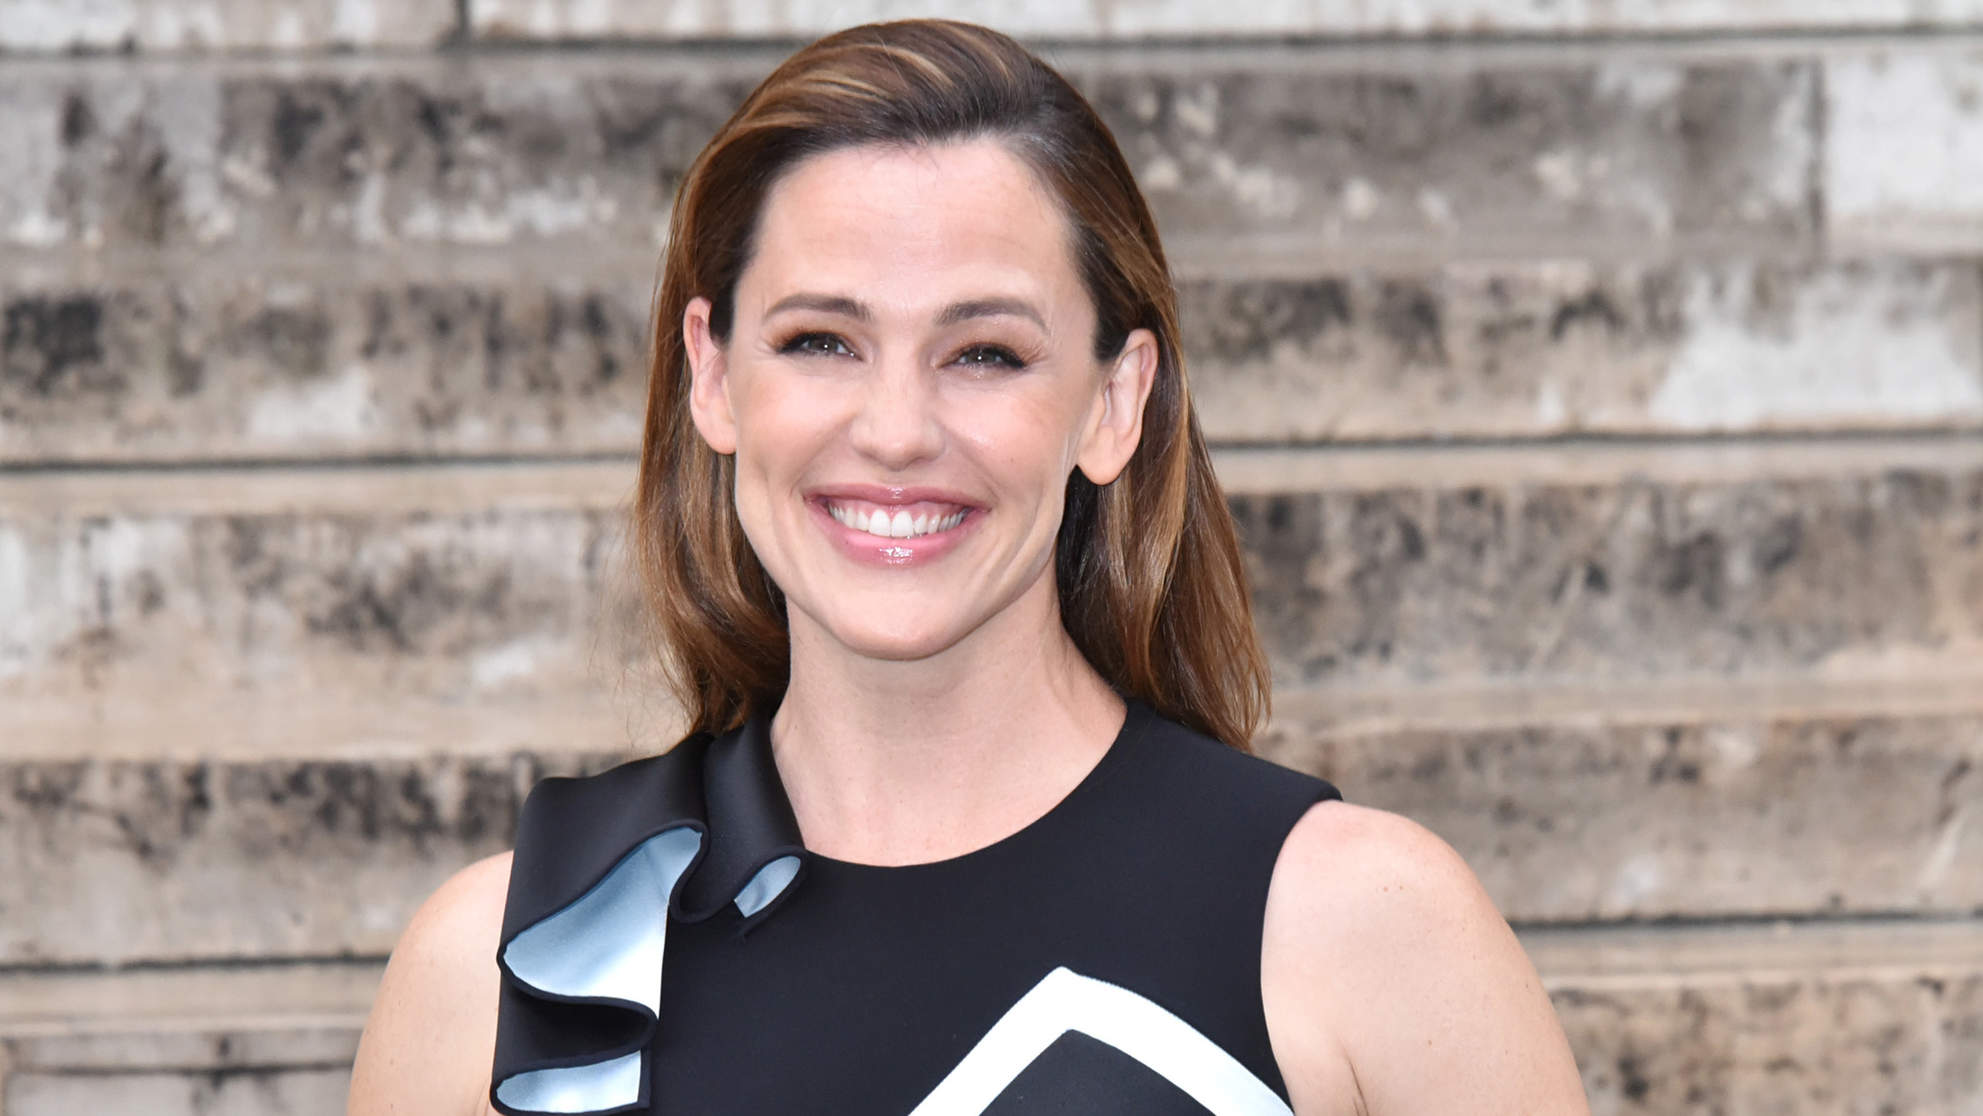 jennifer-garner-smile